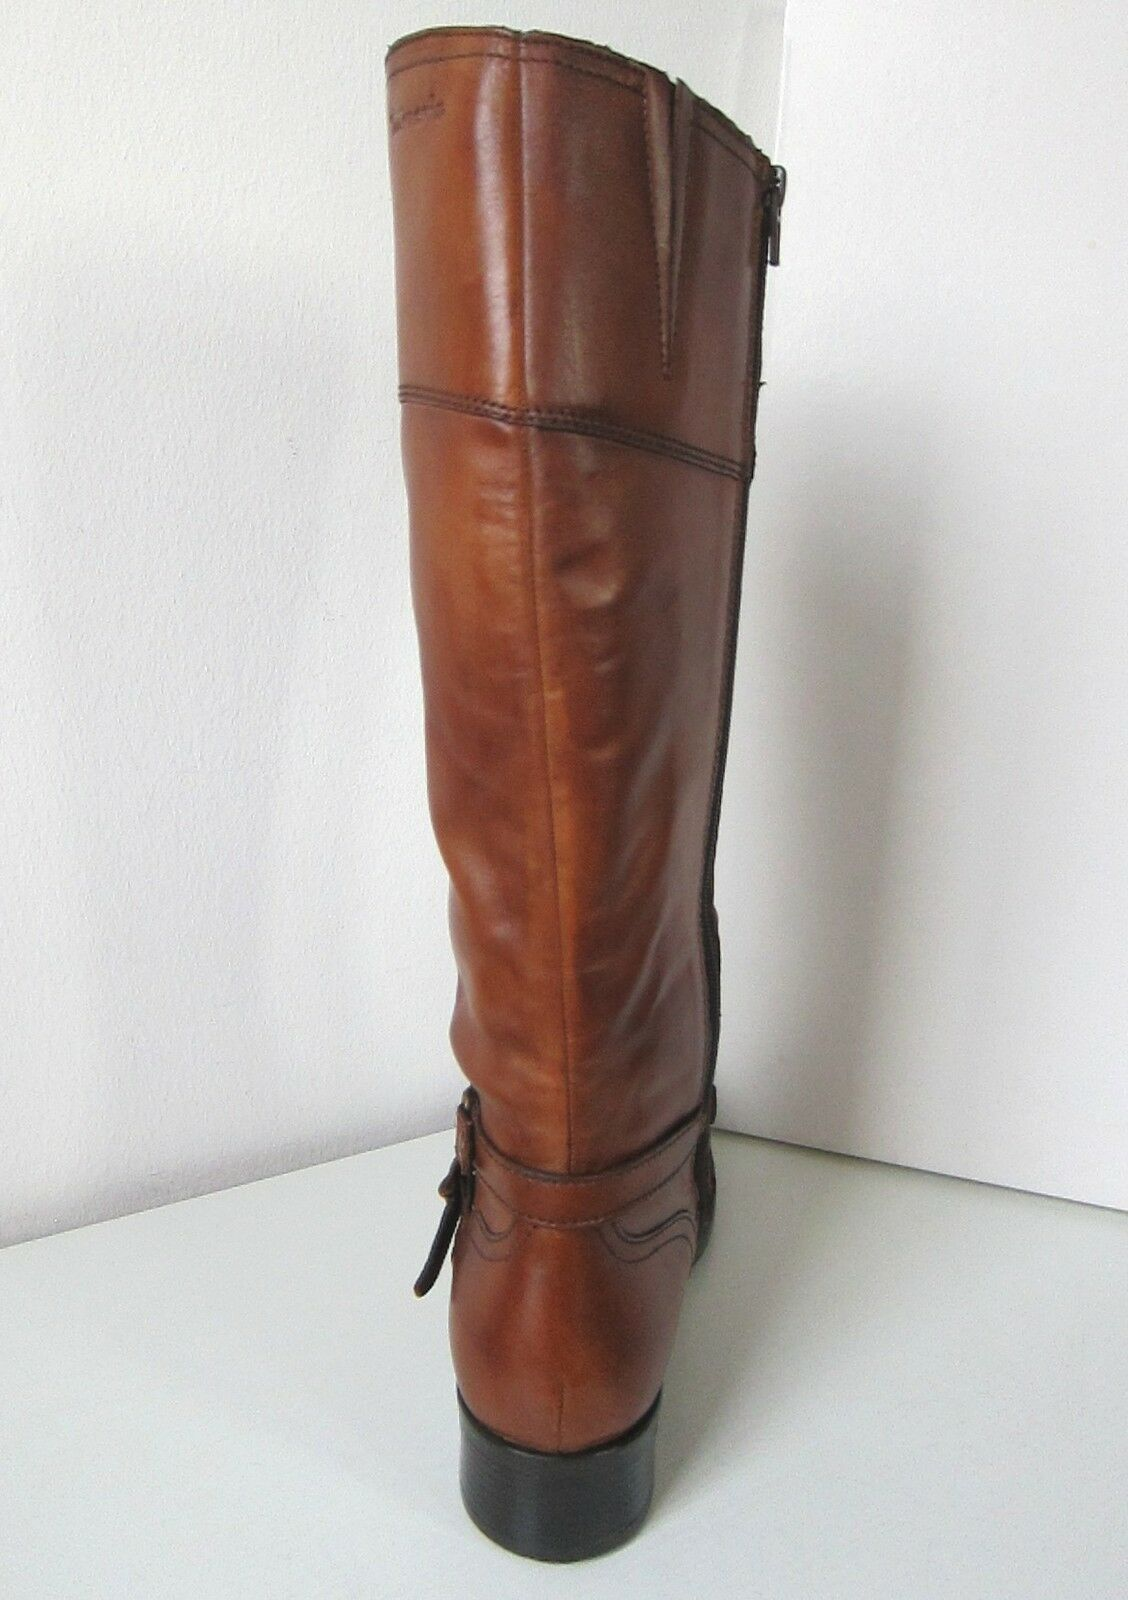 Tamaris Tamaris Tamaris cuero Cabálgala botas con nuez moscada cognac Leather Boots Light Brown marrón 216873